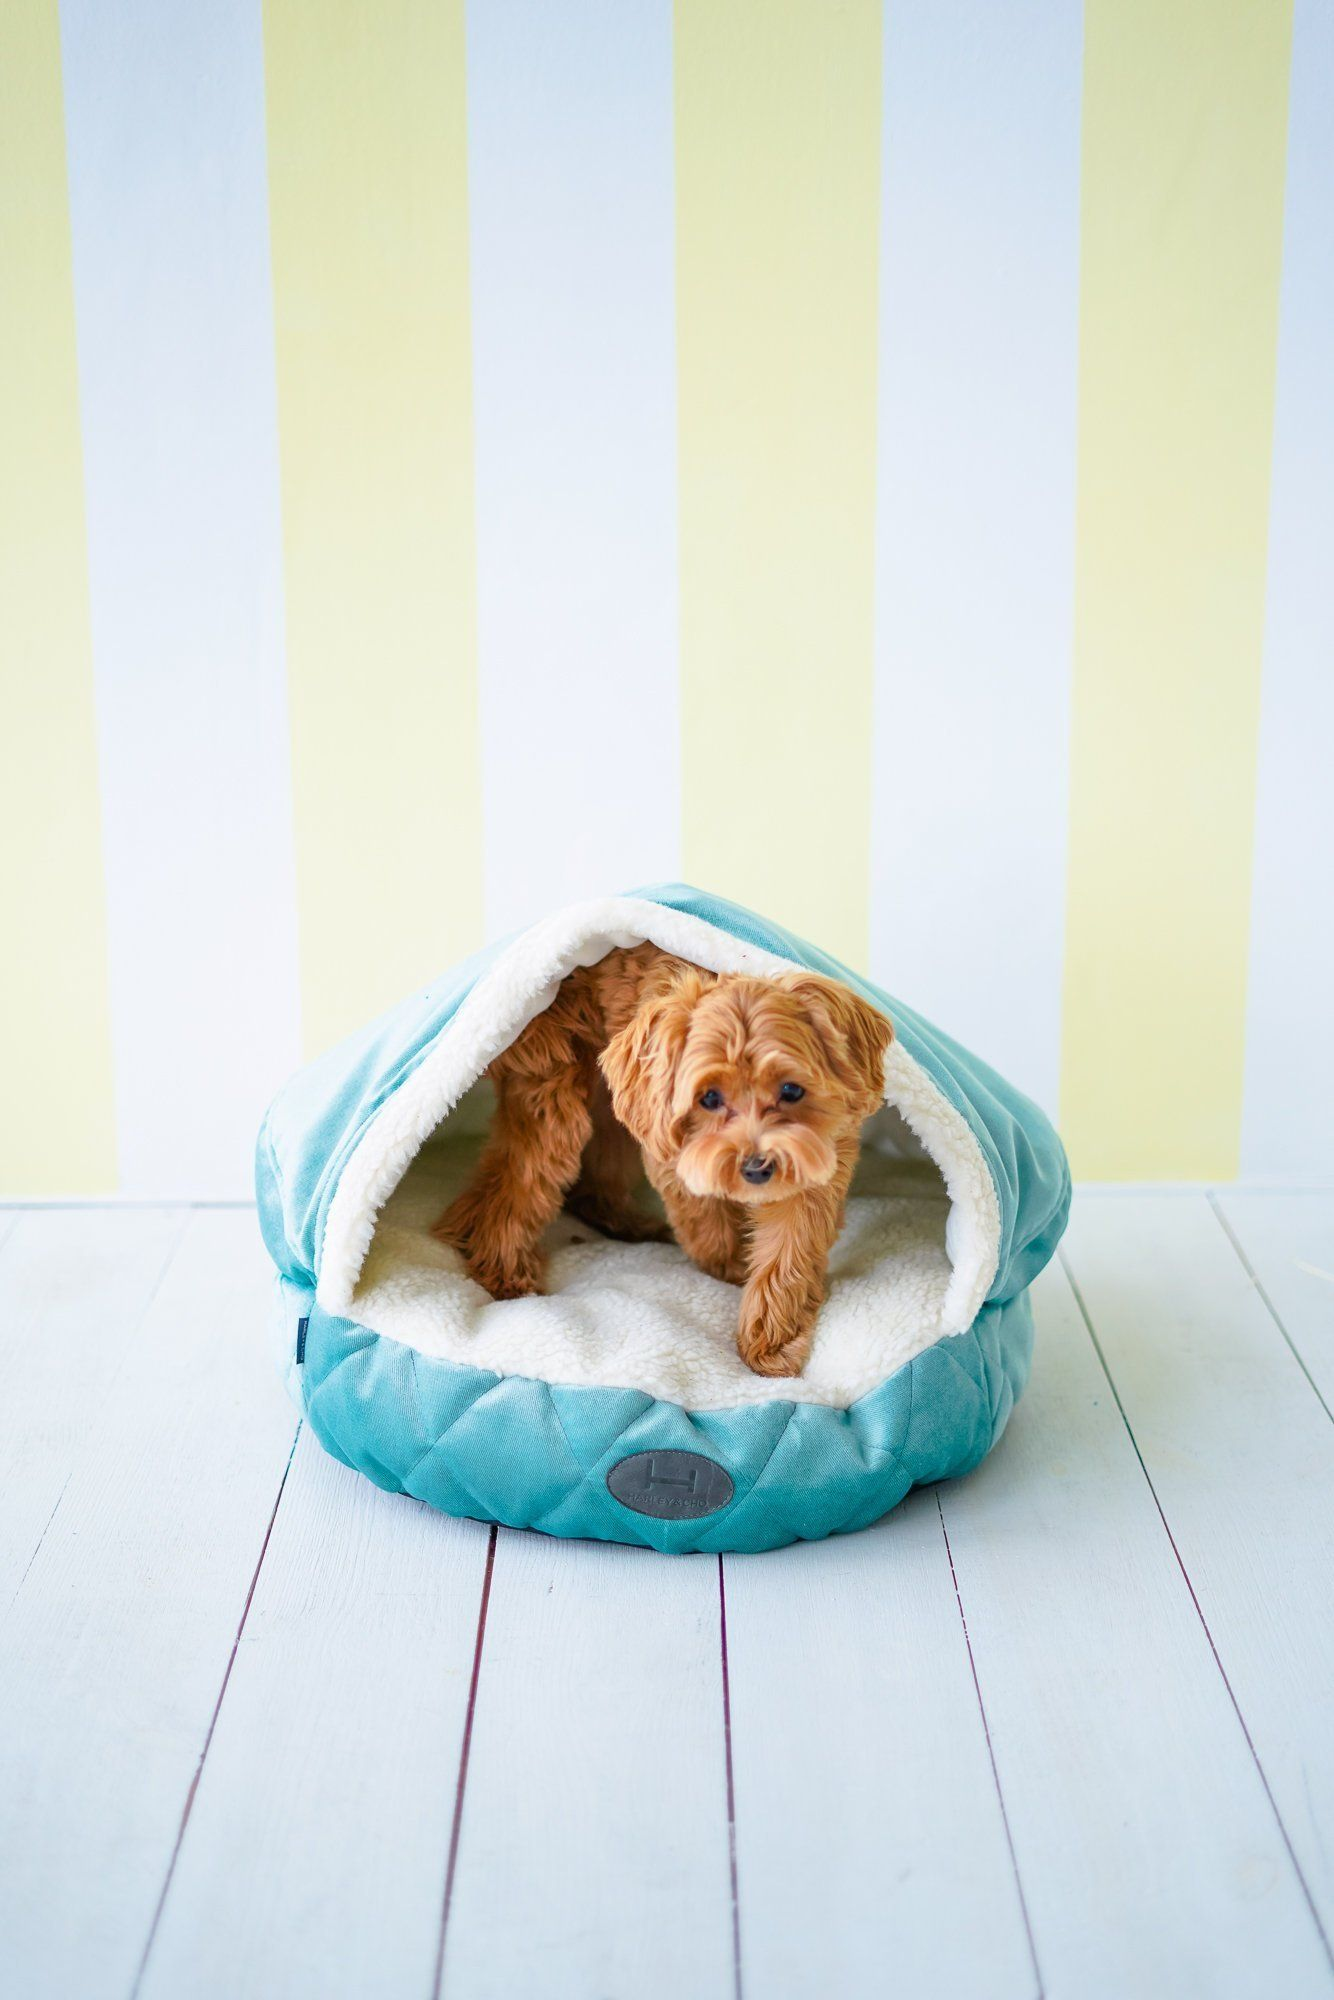 Dog cave bed Turquoise, white faux fur hood for warm